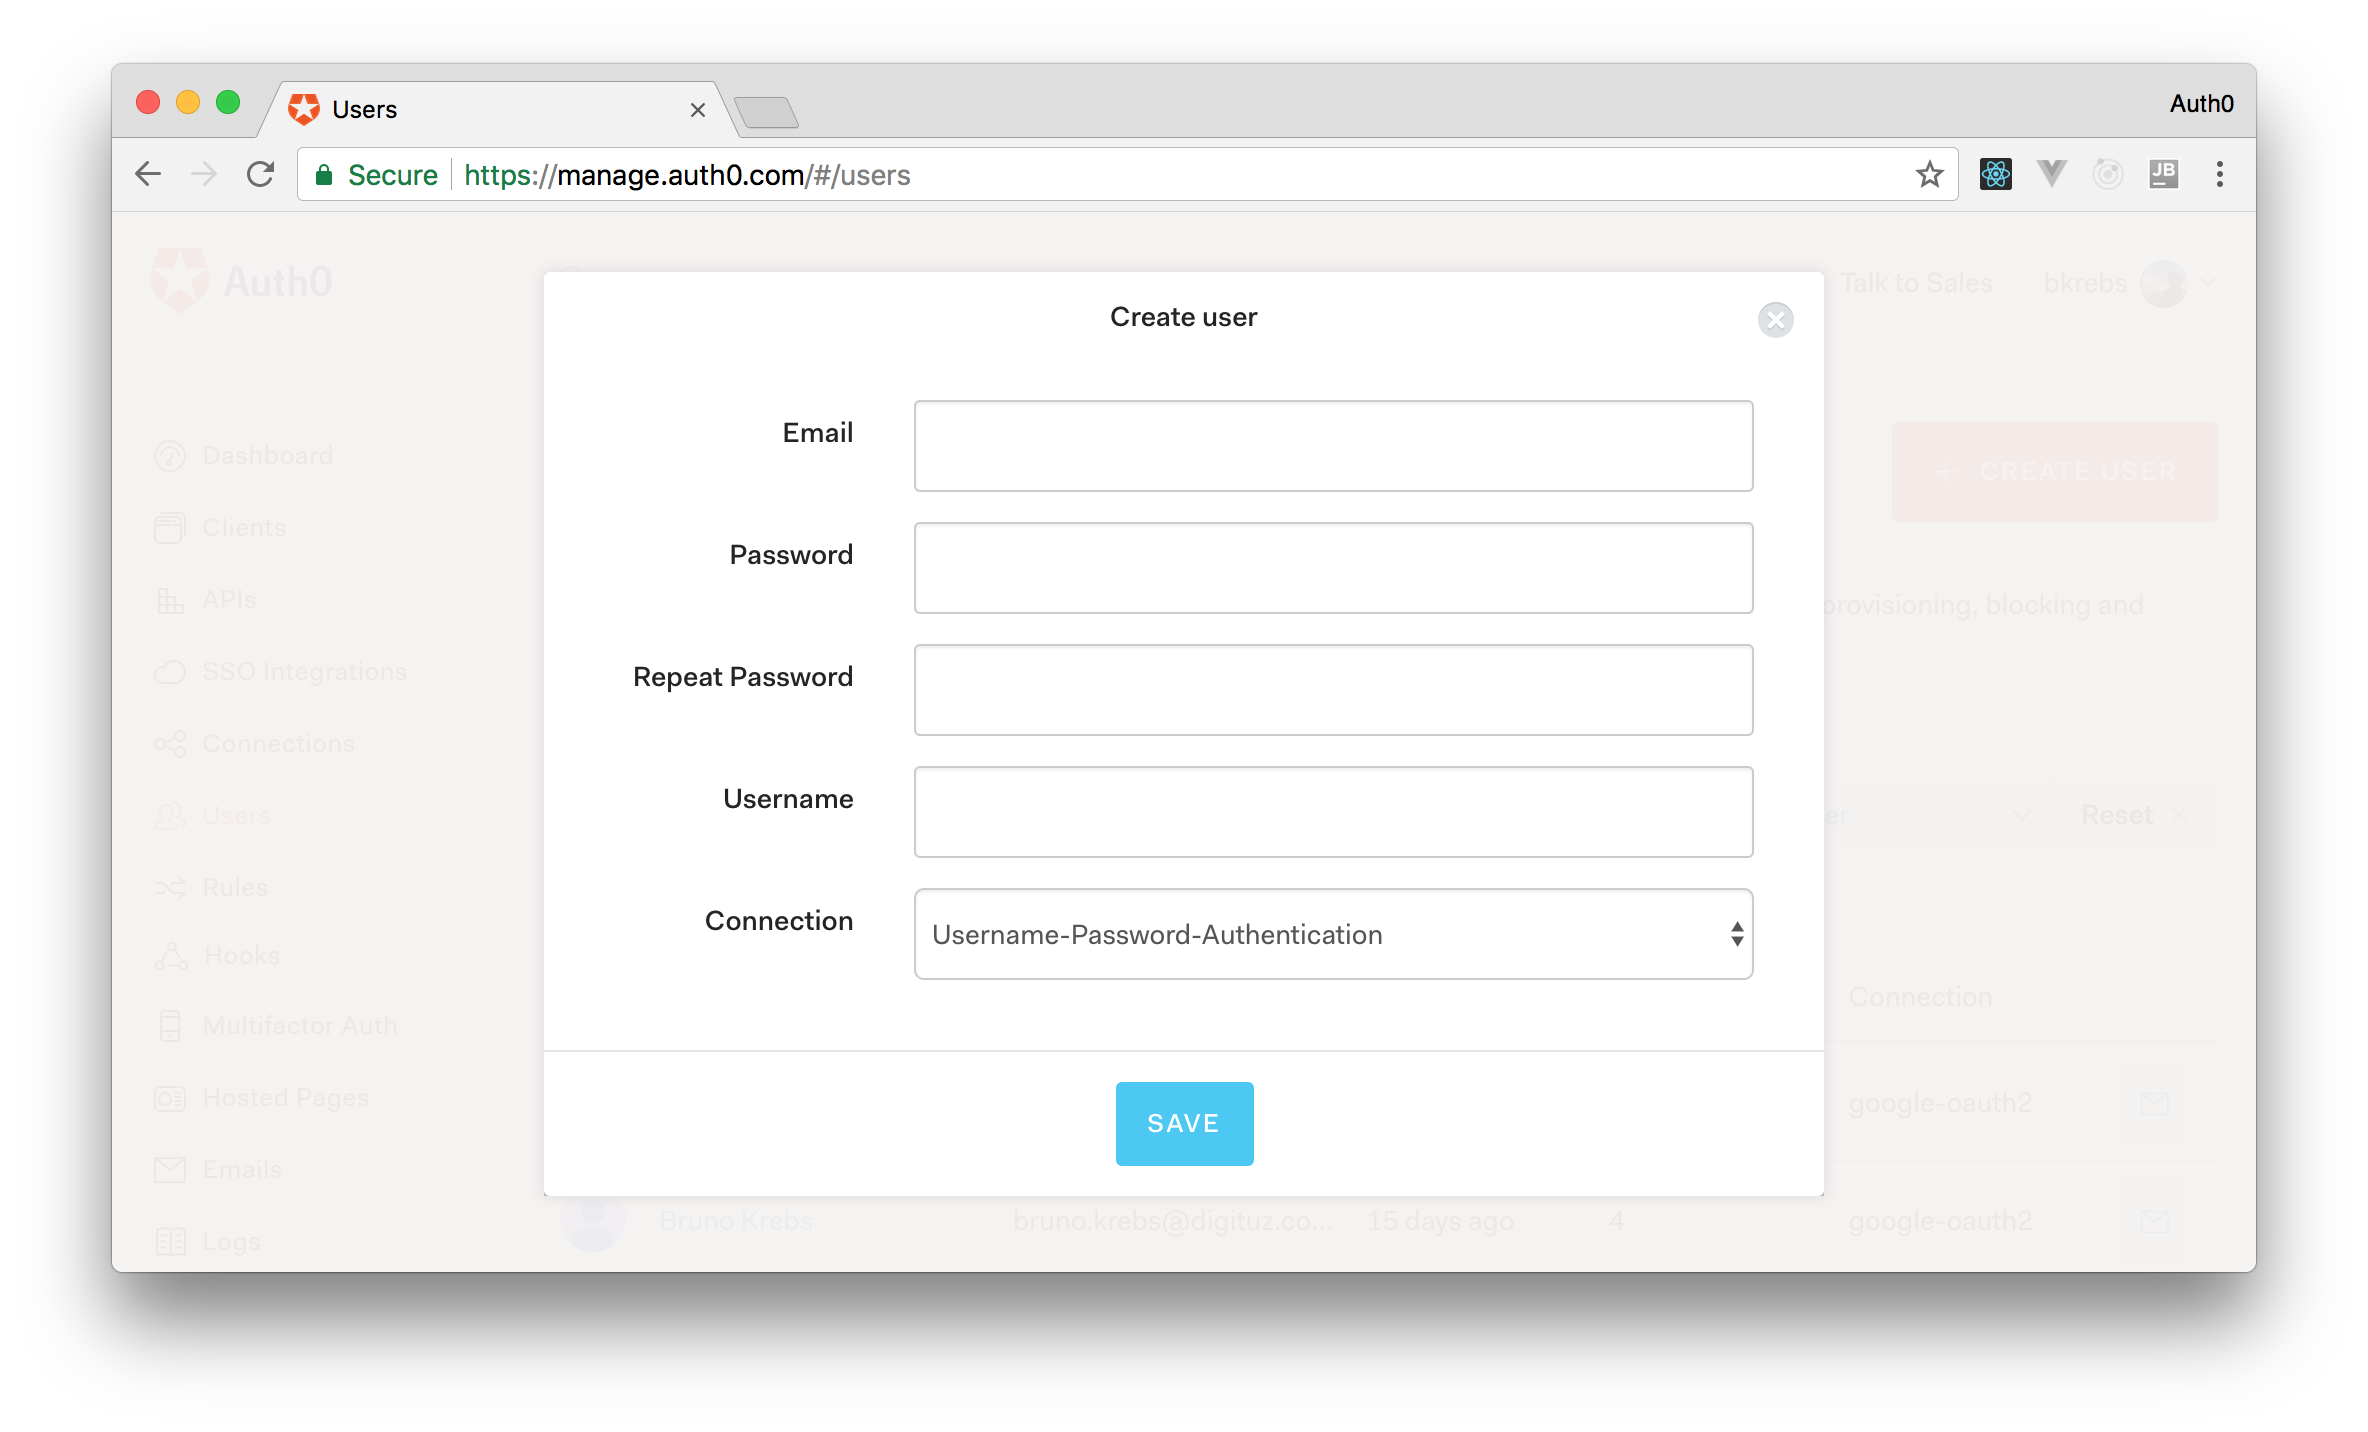 Creating users through the Auth0 management dashboard